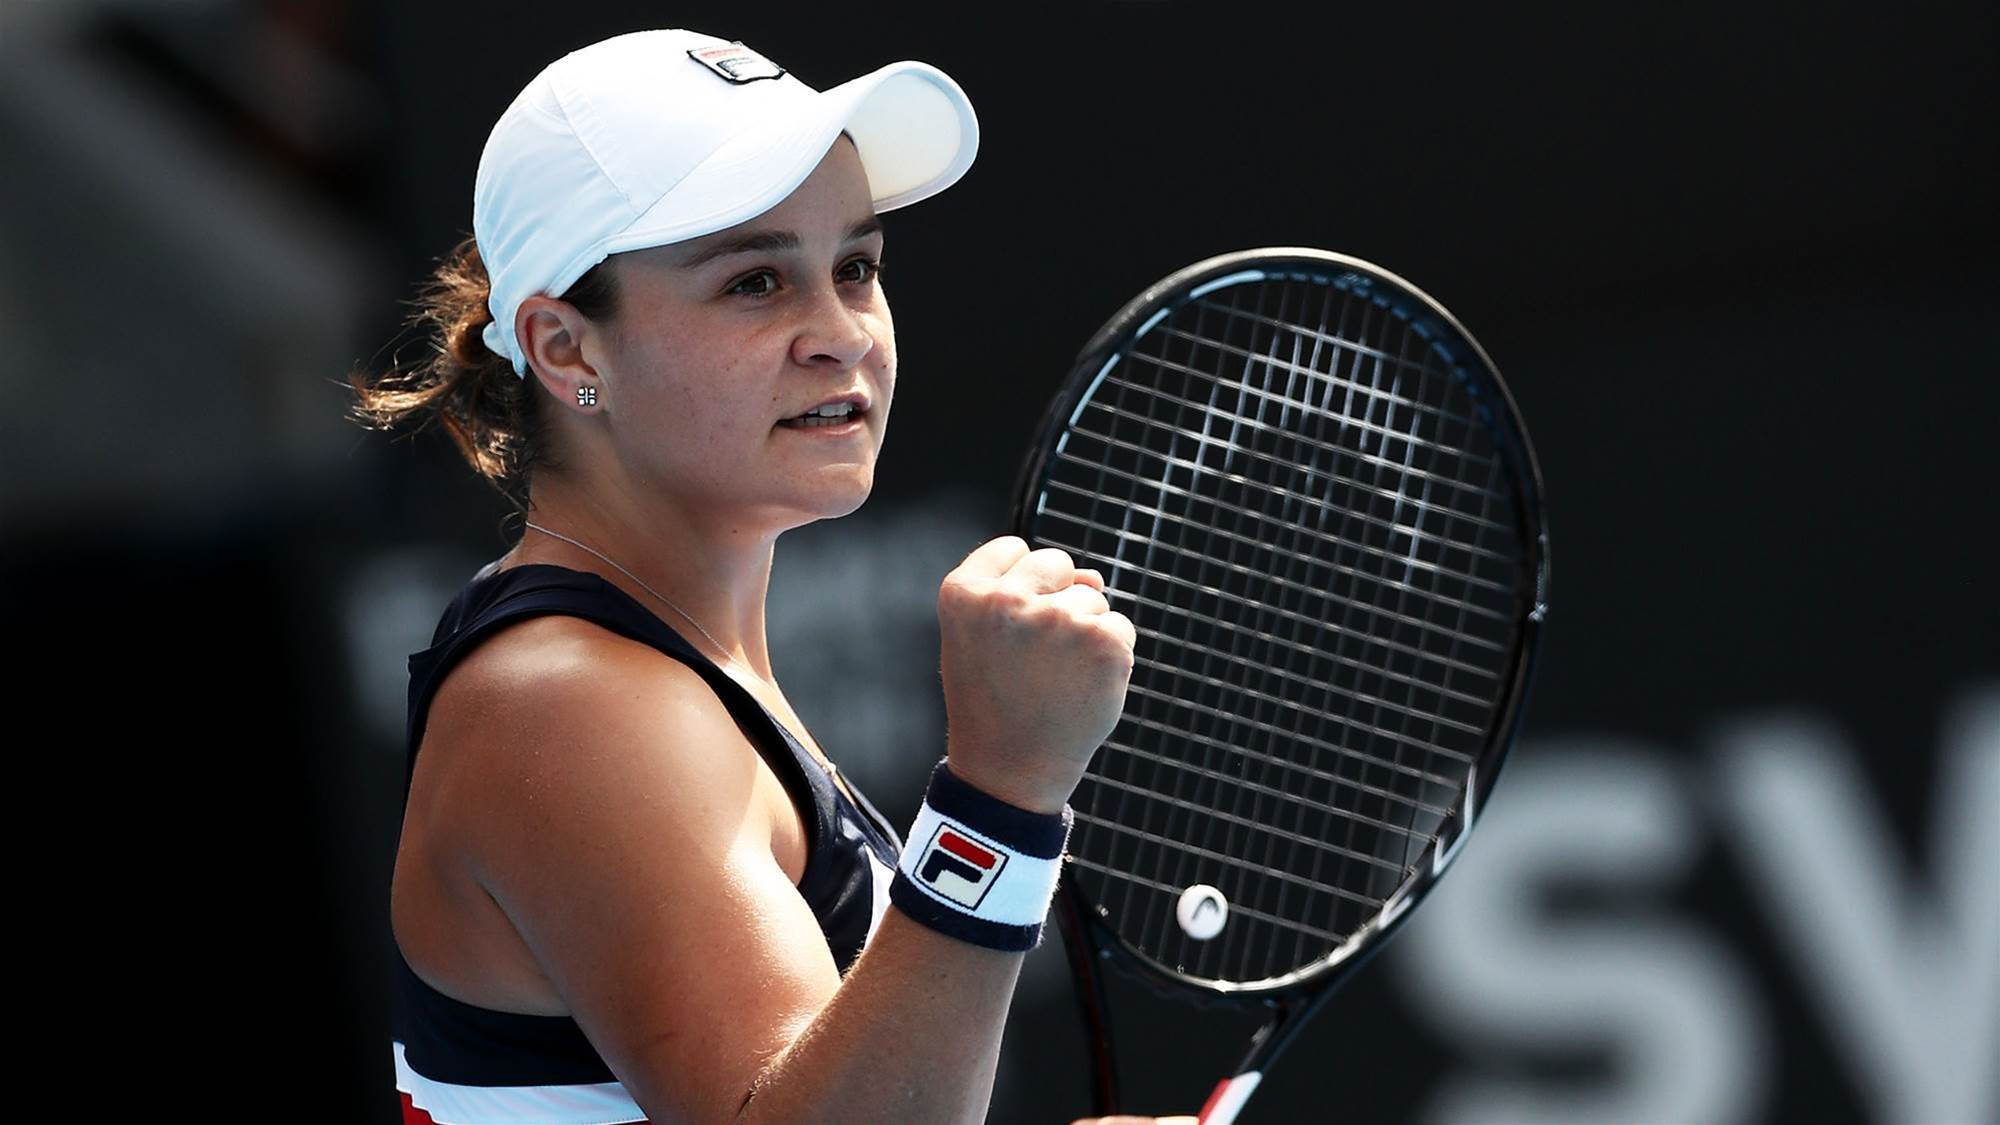 Barty takes down world no.1